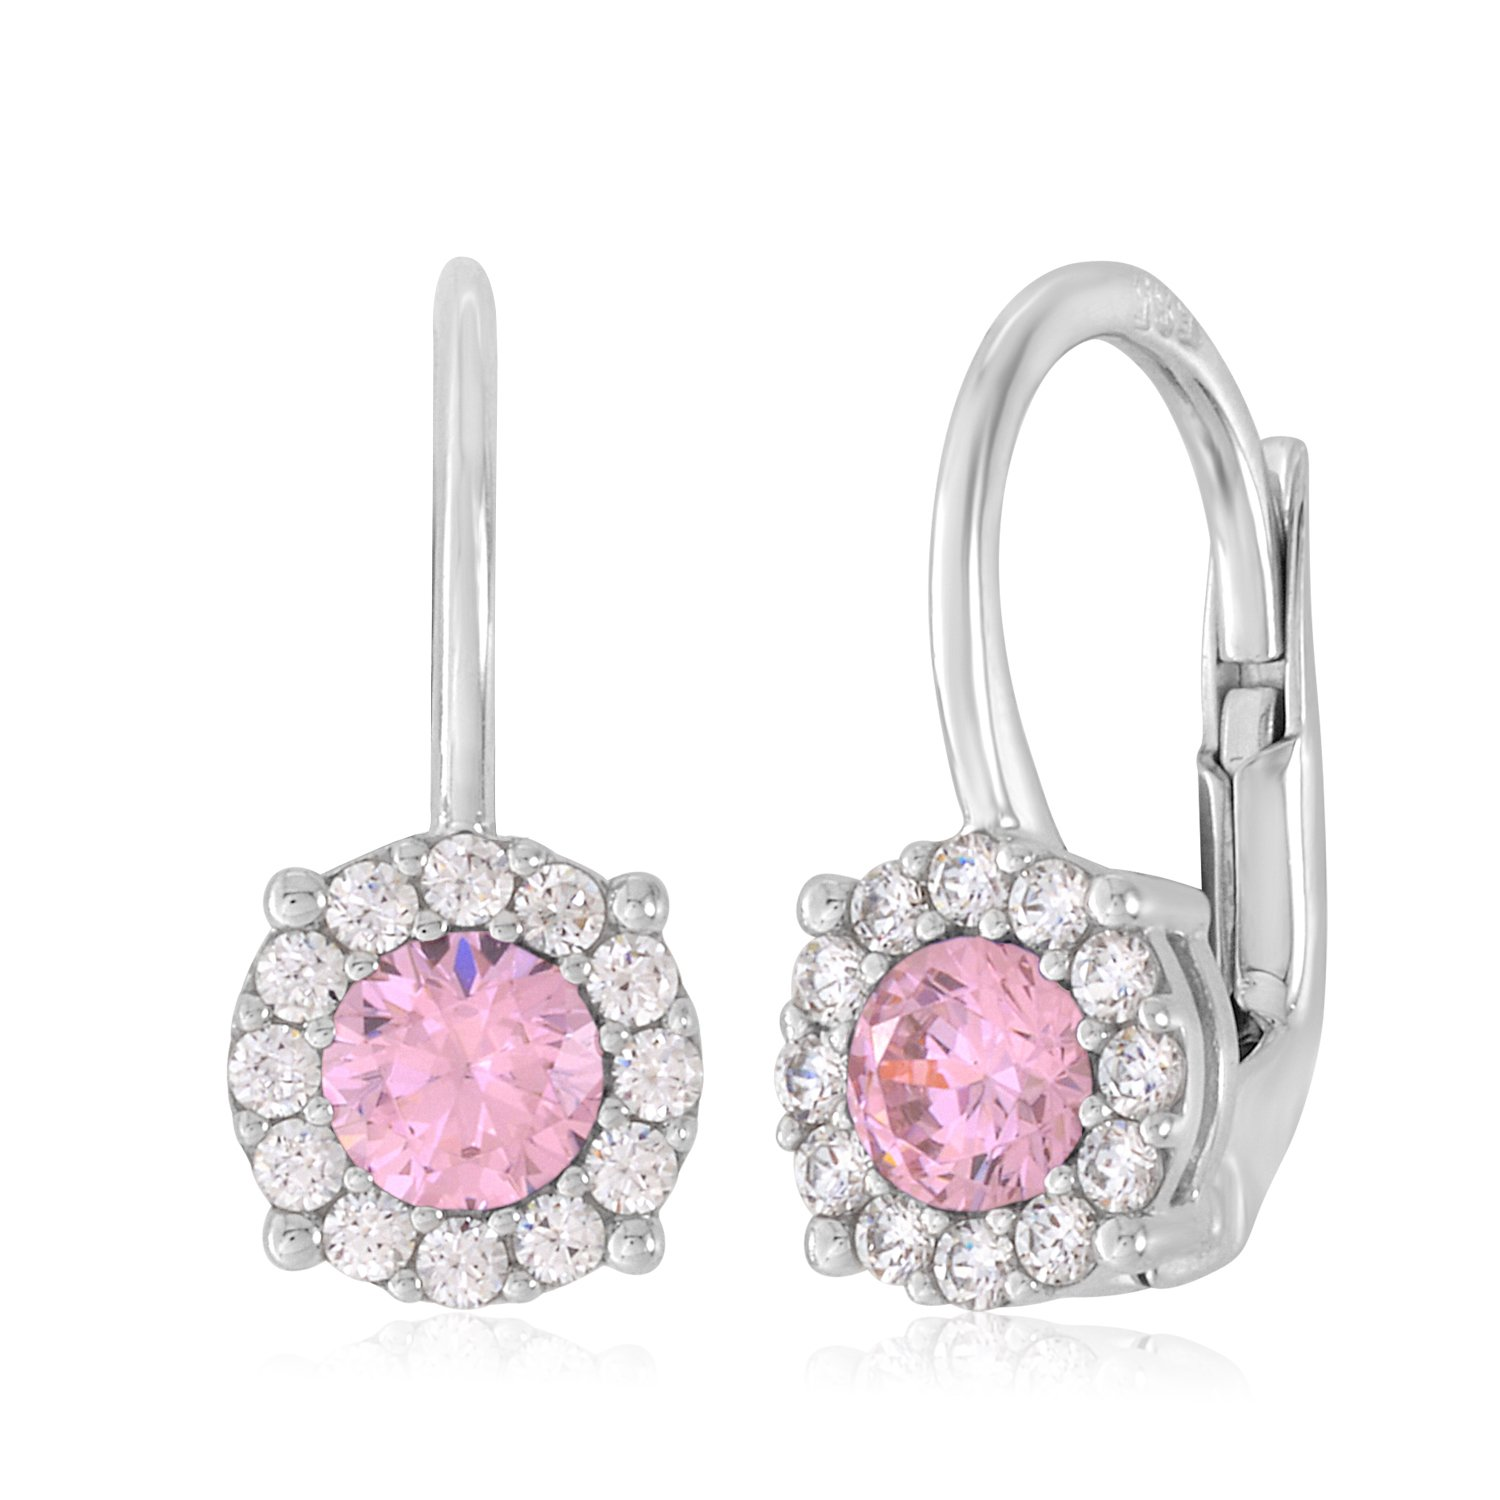 UNICORNJ 14K White Gold CZ Halo Leverback Earrings with Pink Center Italy